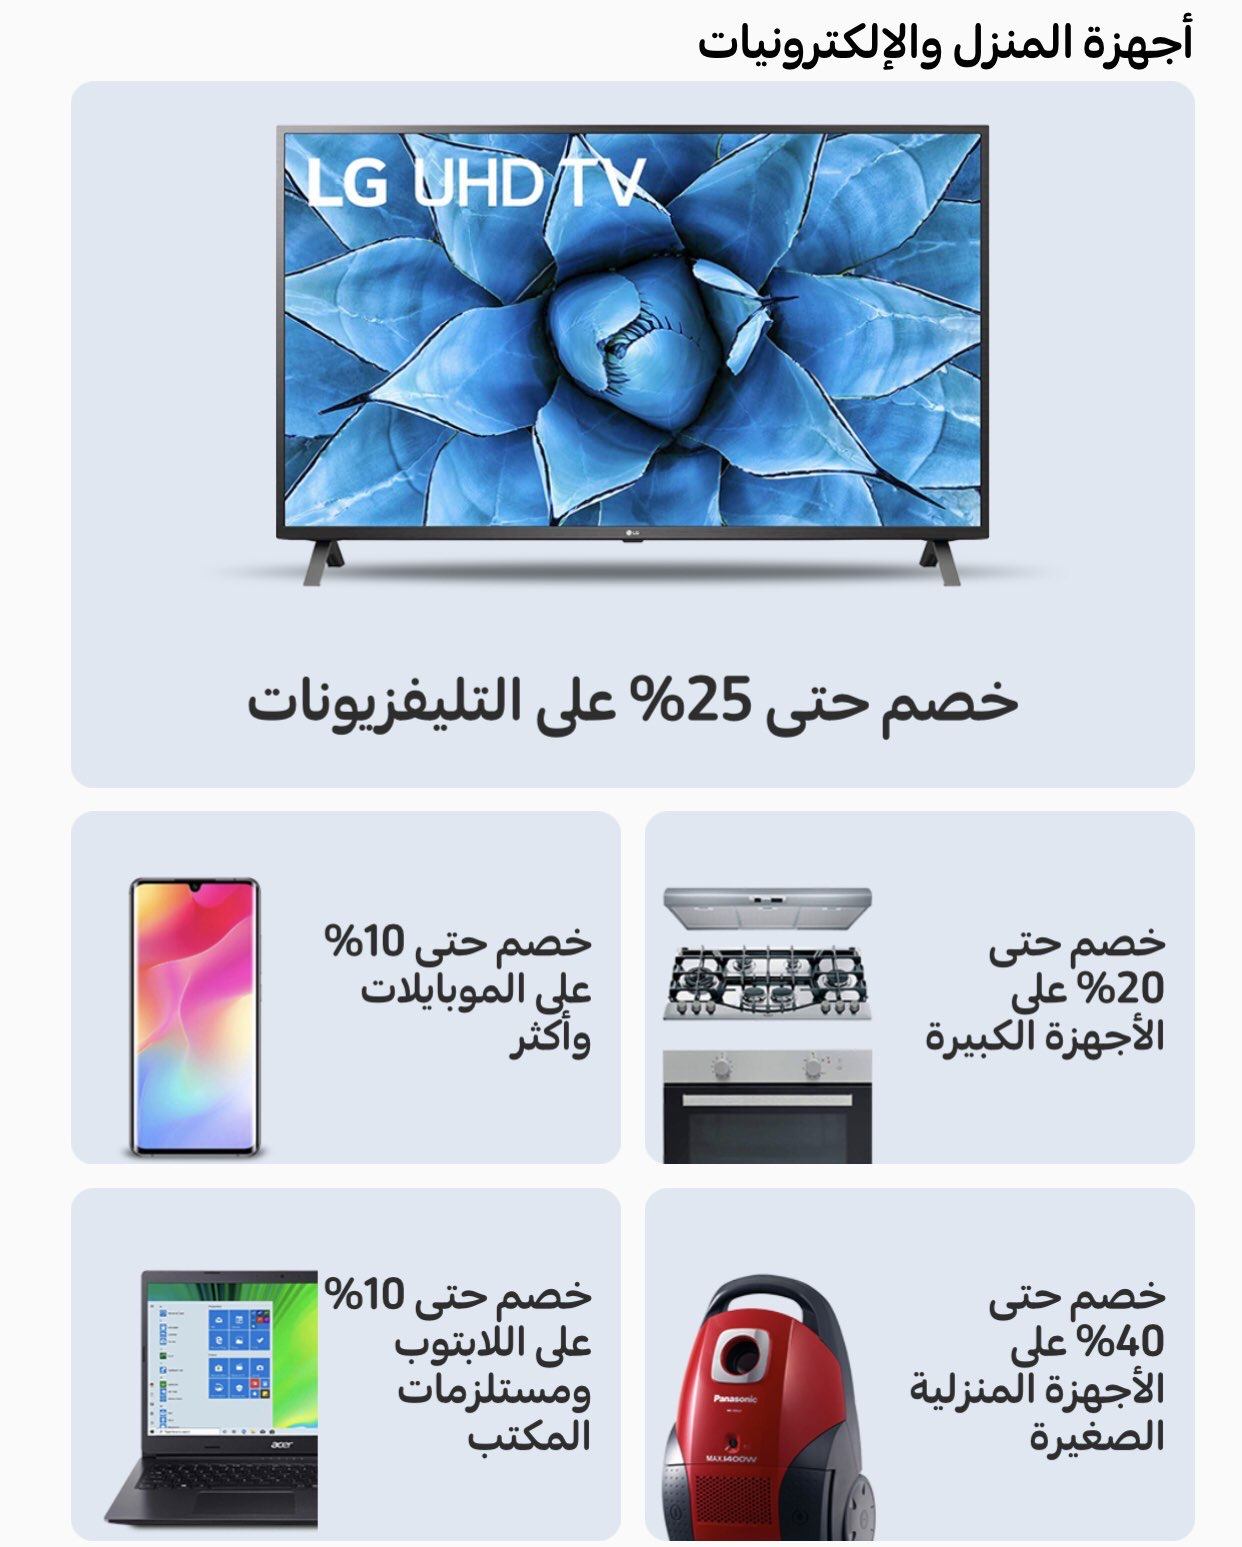 New Carrefour Egypt introduces 50 EGP discount codes on your first order 9